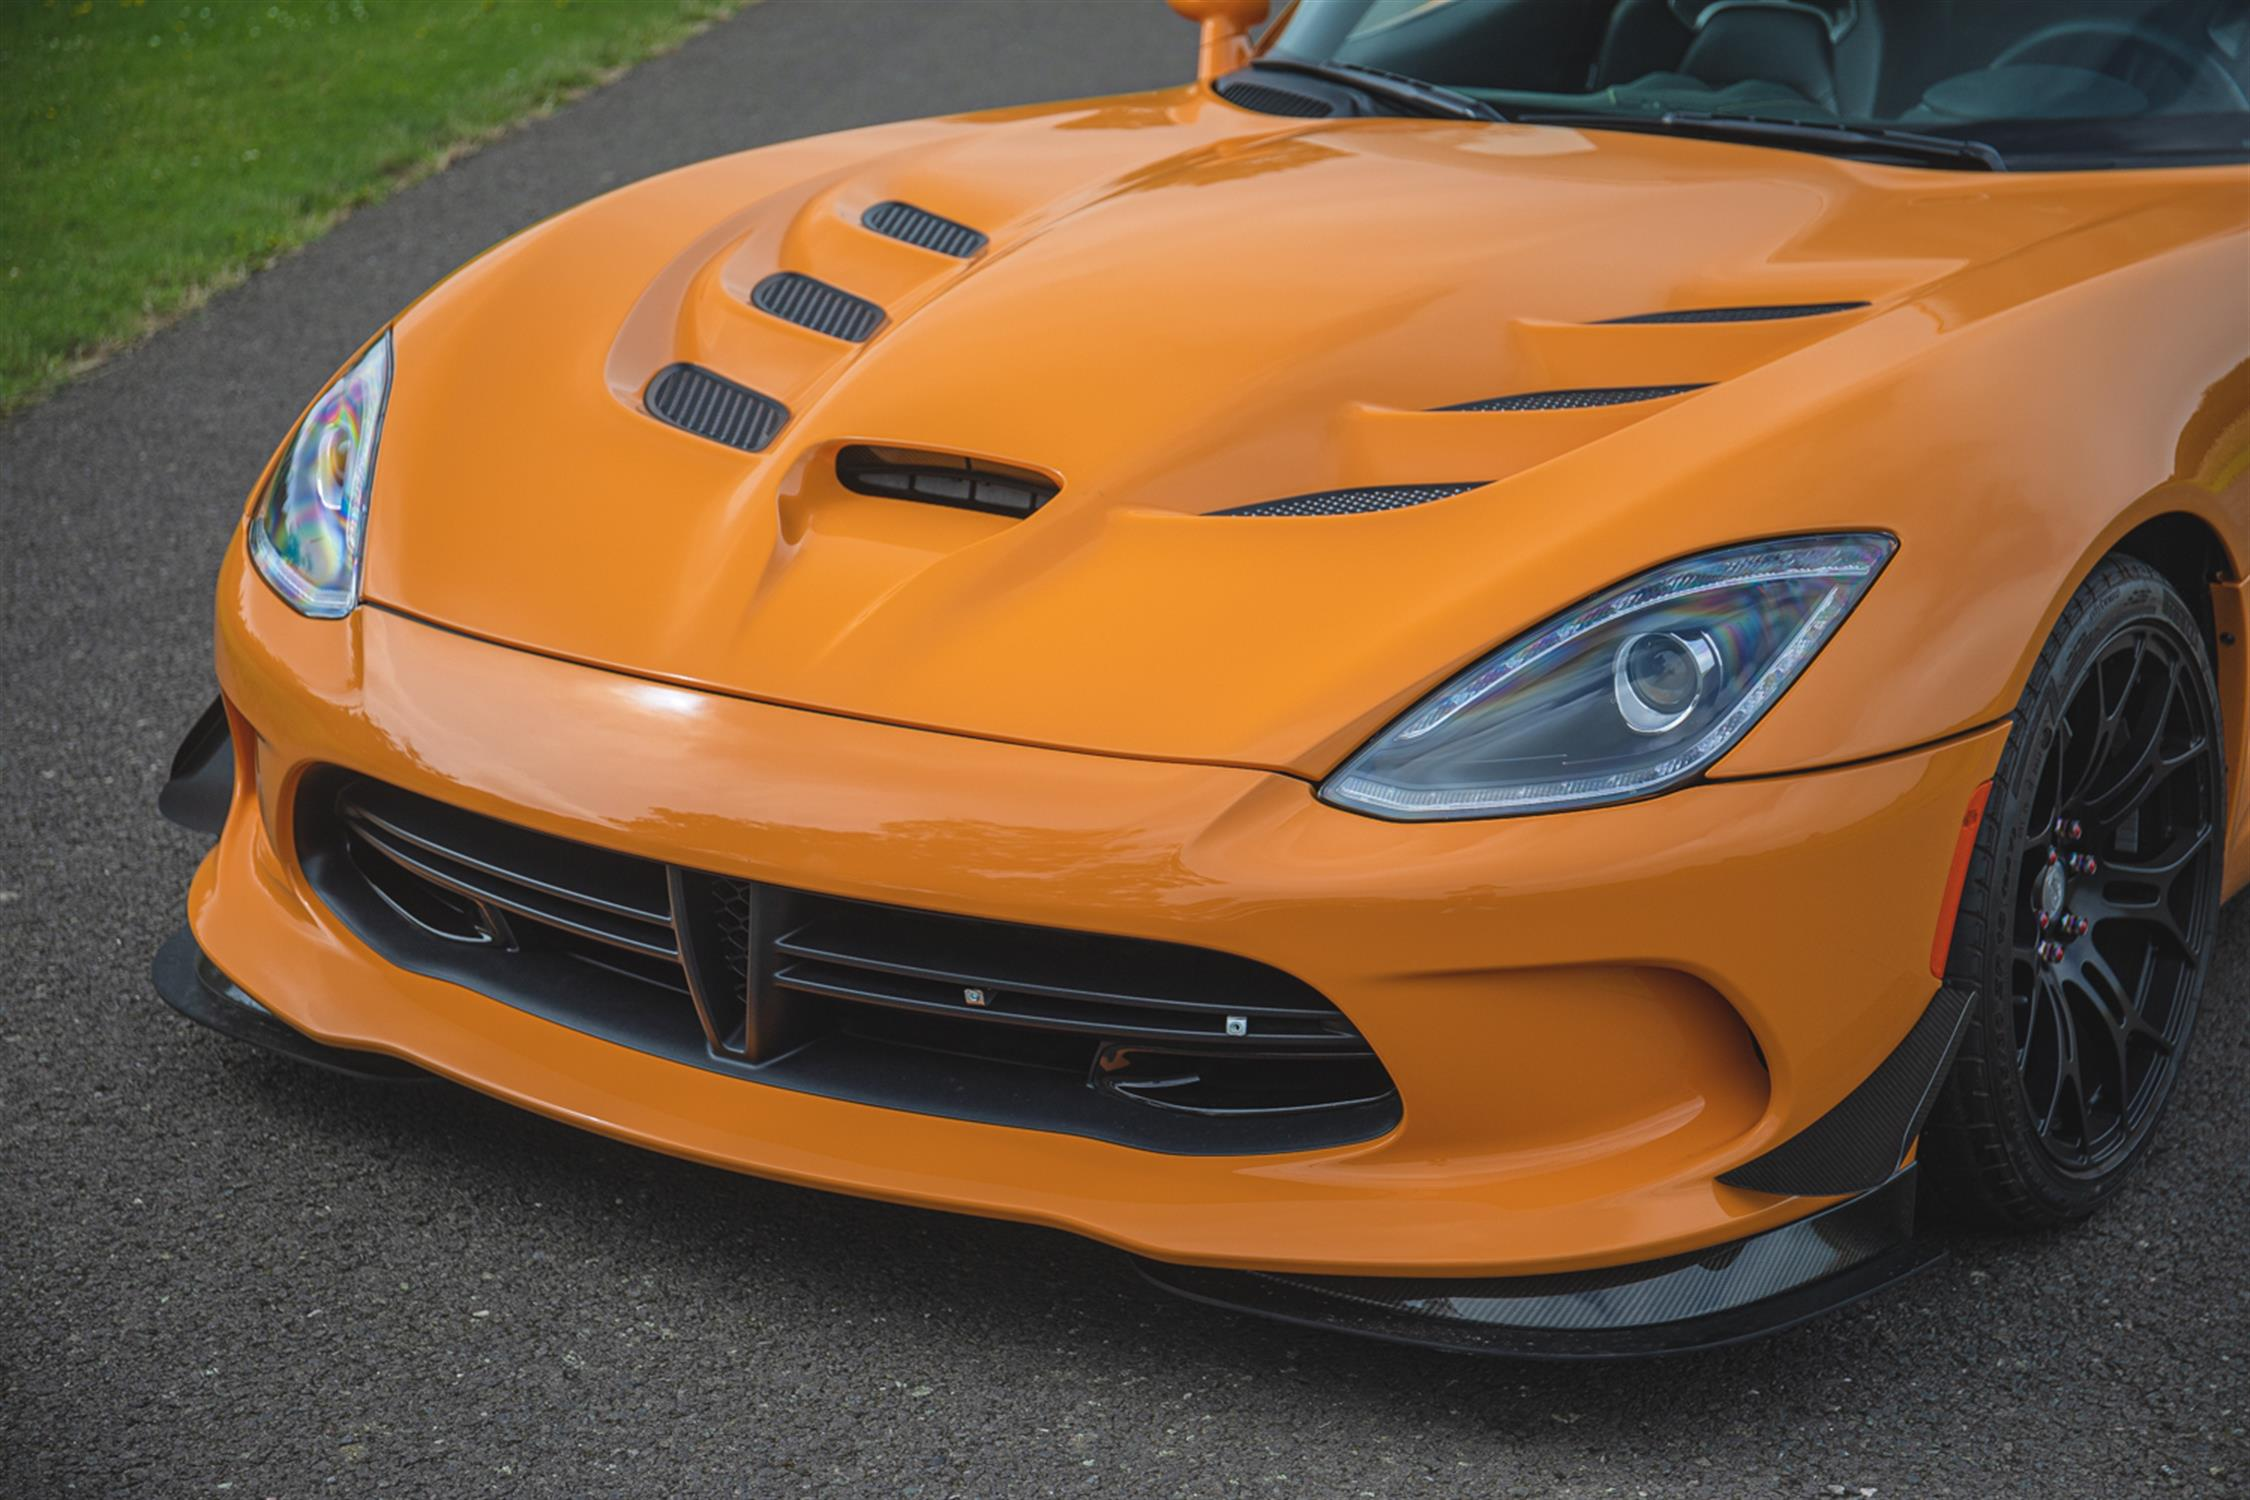 2015 Dodge Viper TA 2.0 6-Speed Coupe - Image 9 of 10